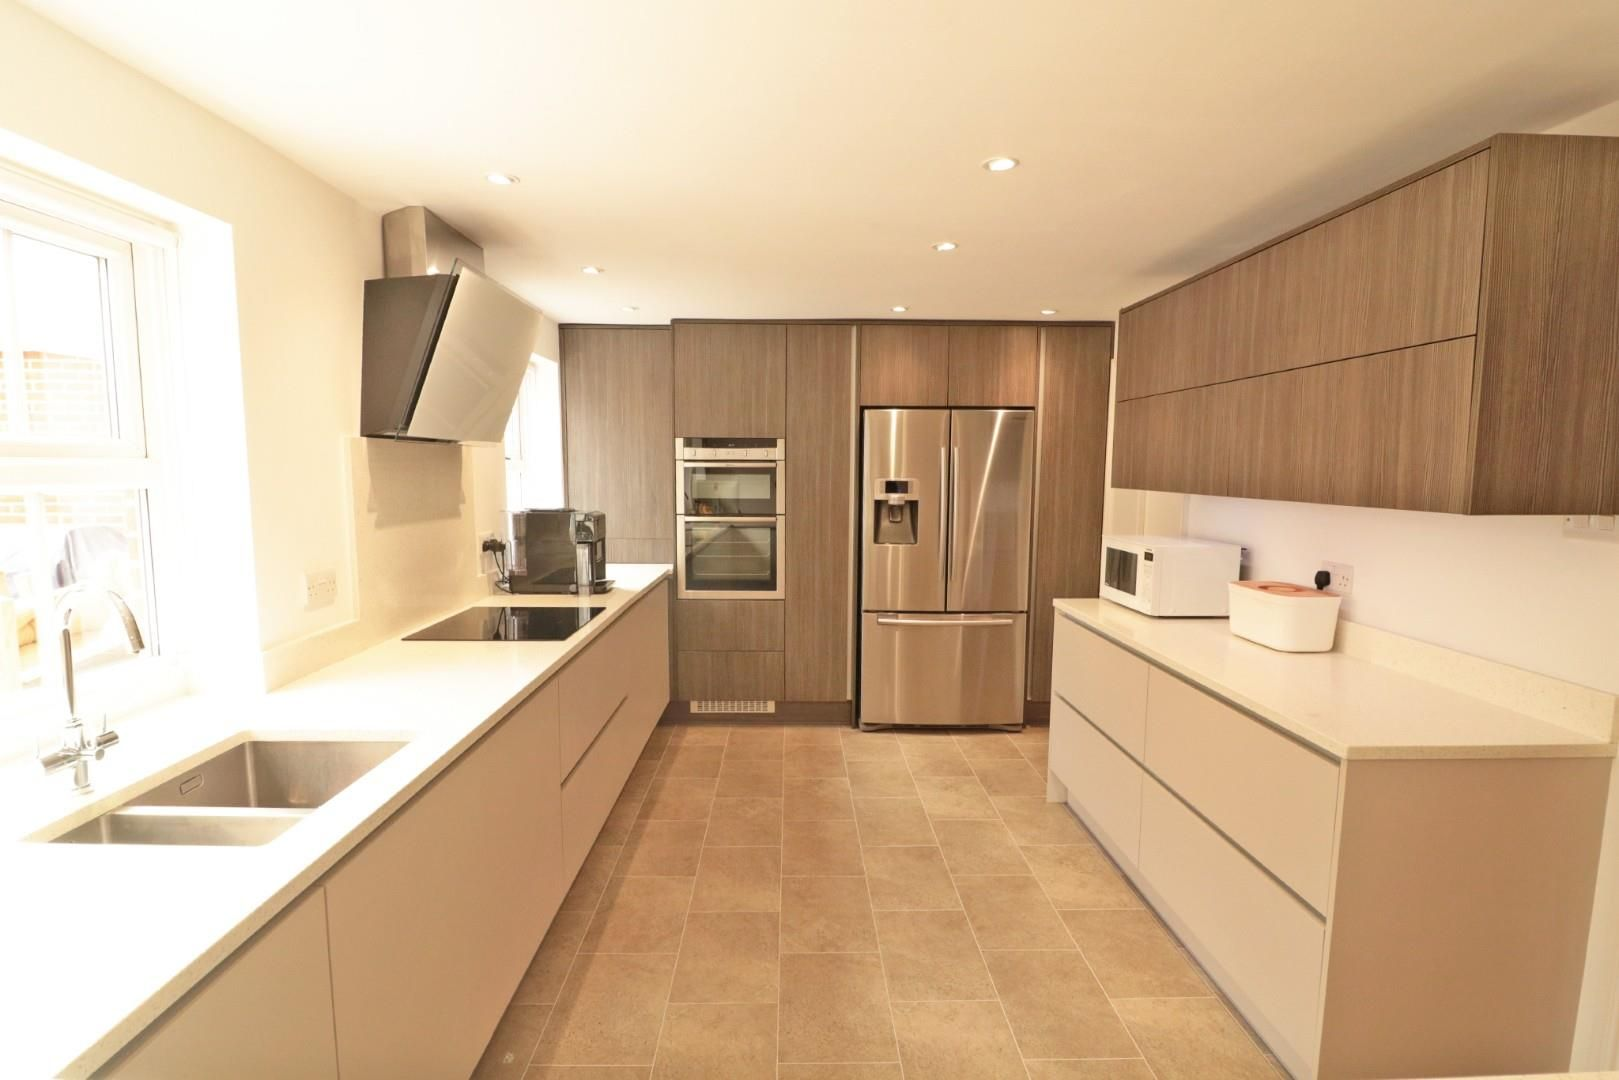 4 bed detached for sale in Binfield 7